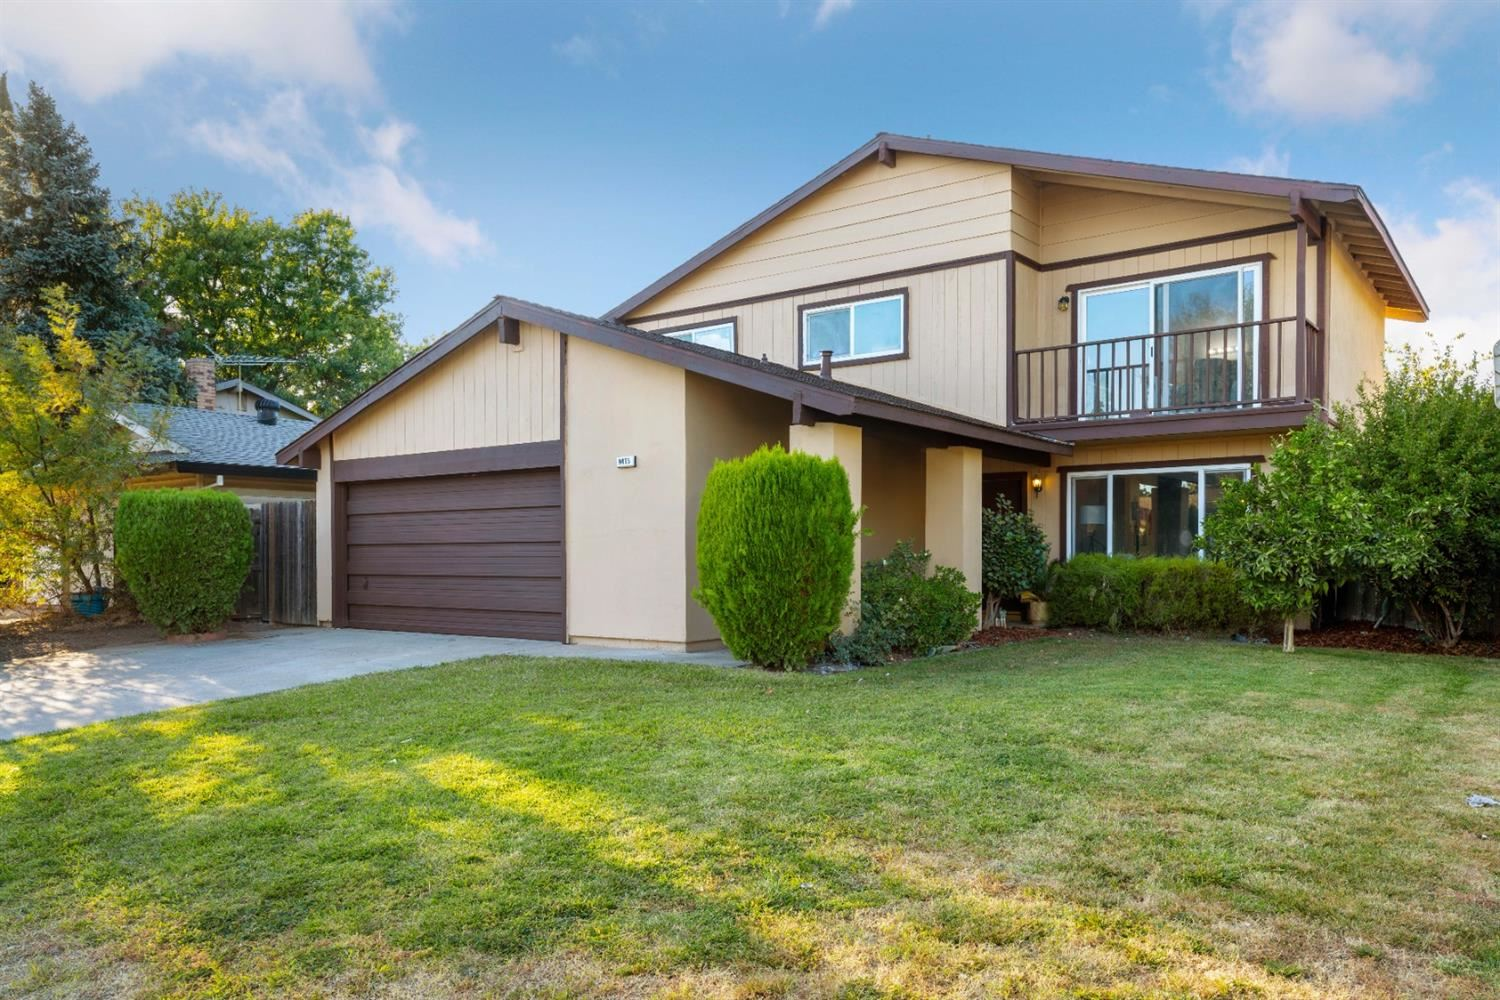 Photo of 9475 Alcosta Way, Sacramento, CA 95827 (MLS # 20064019)